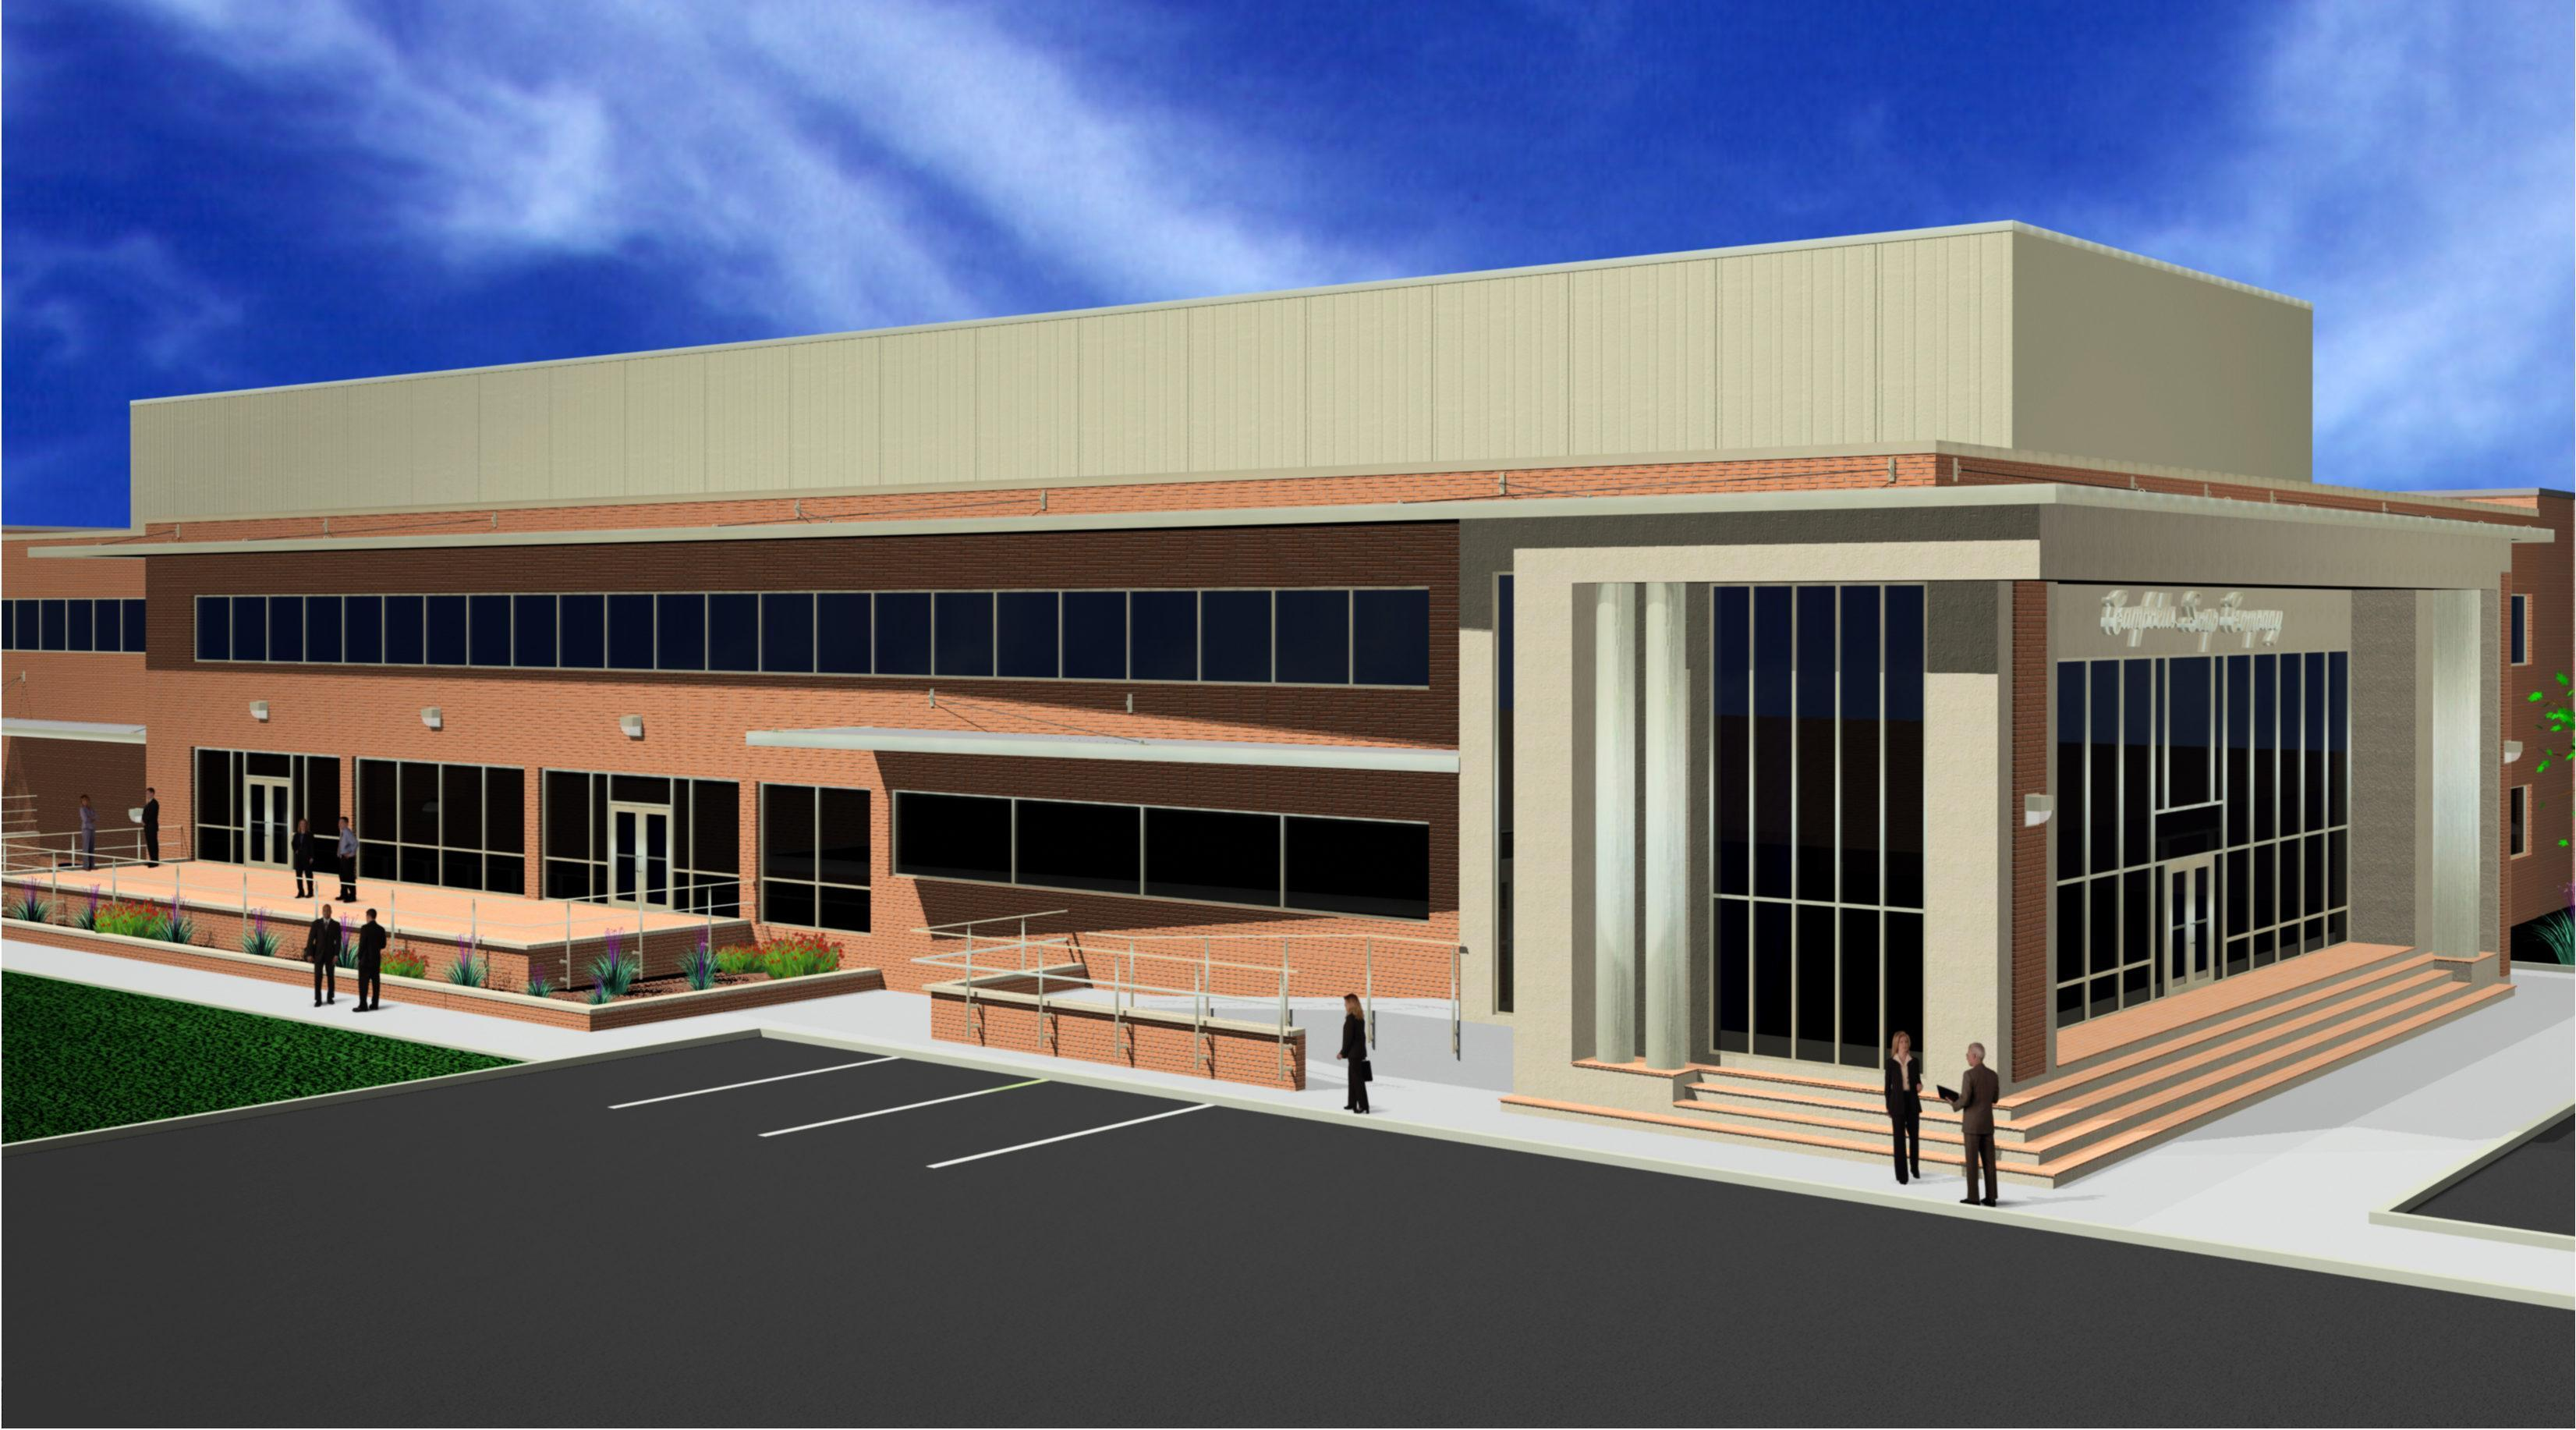 3d rendering of building exterior